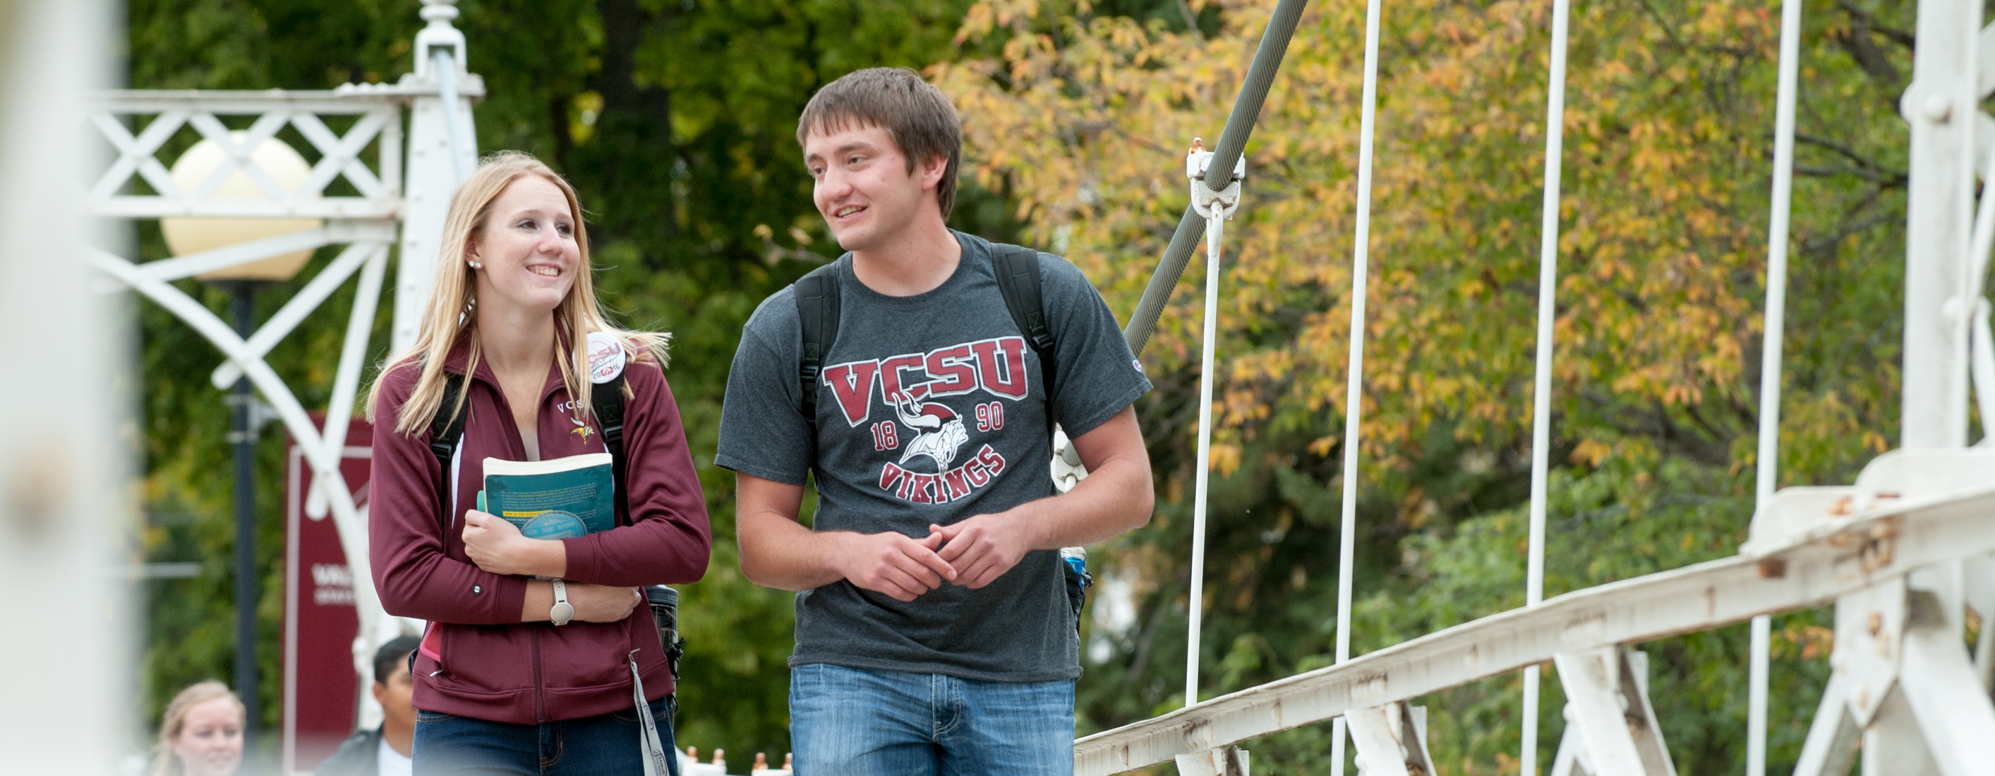 VCSU is U.S. News Best College